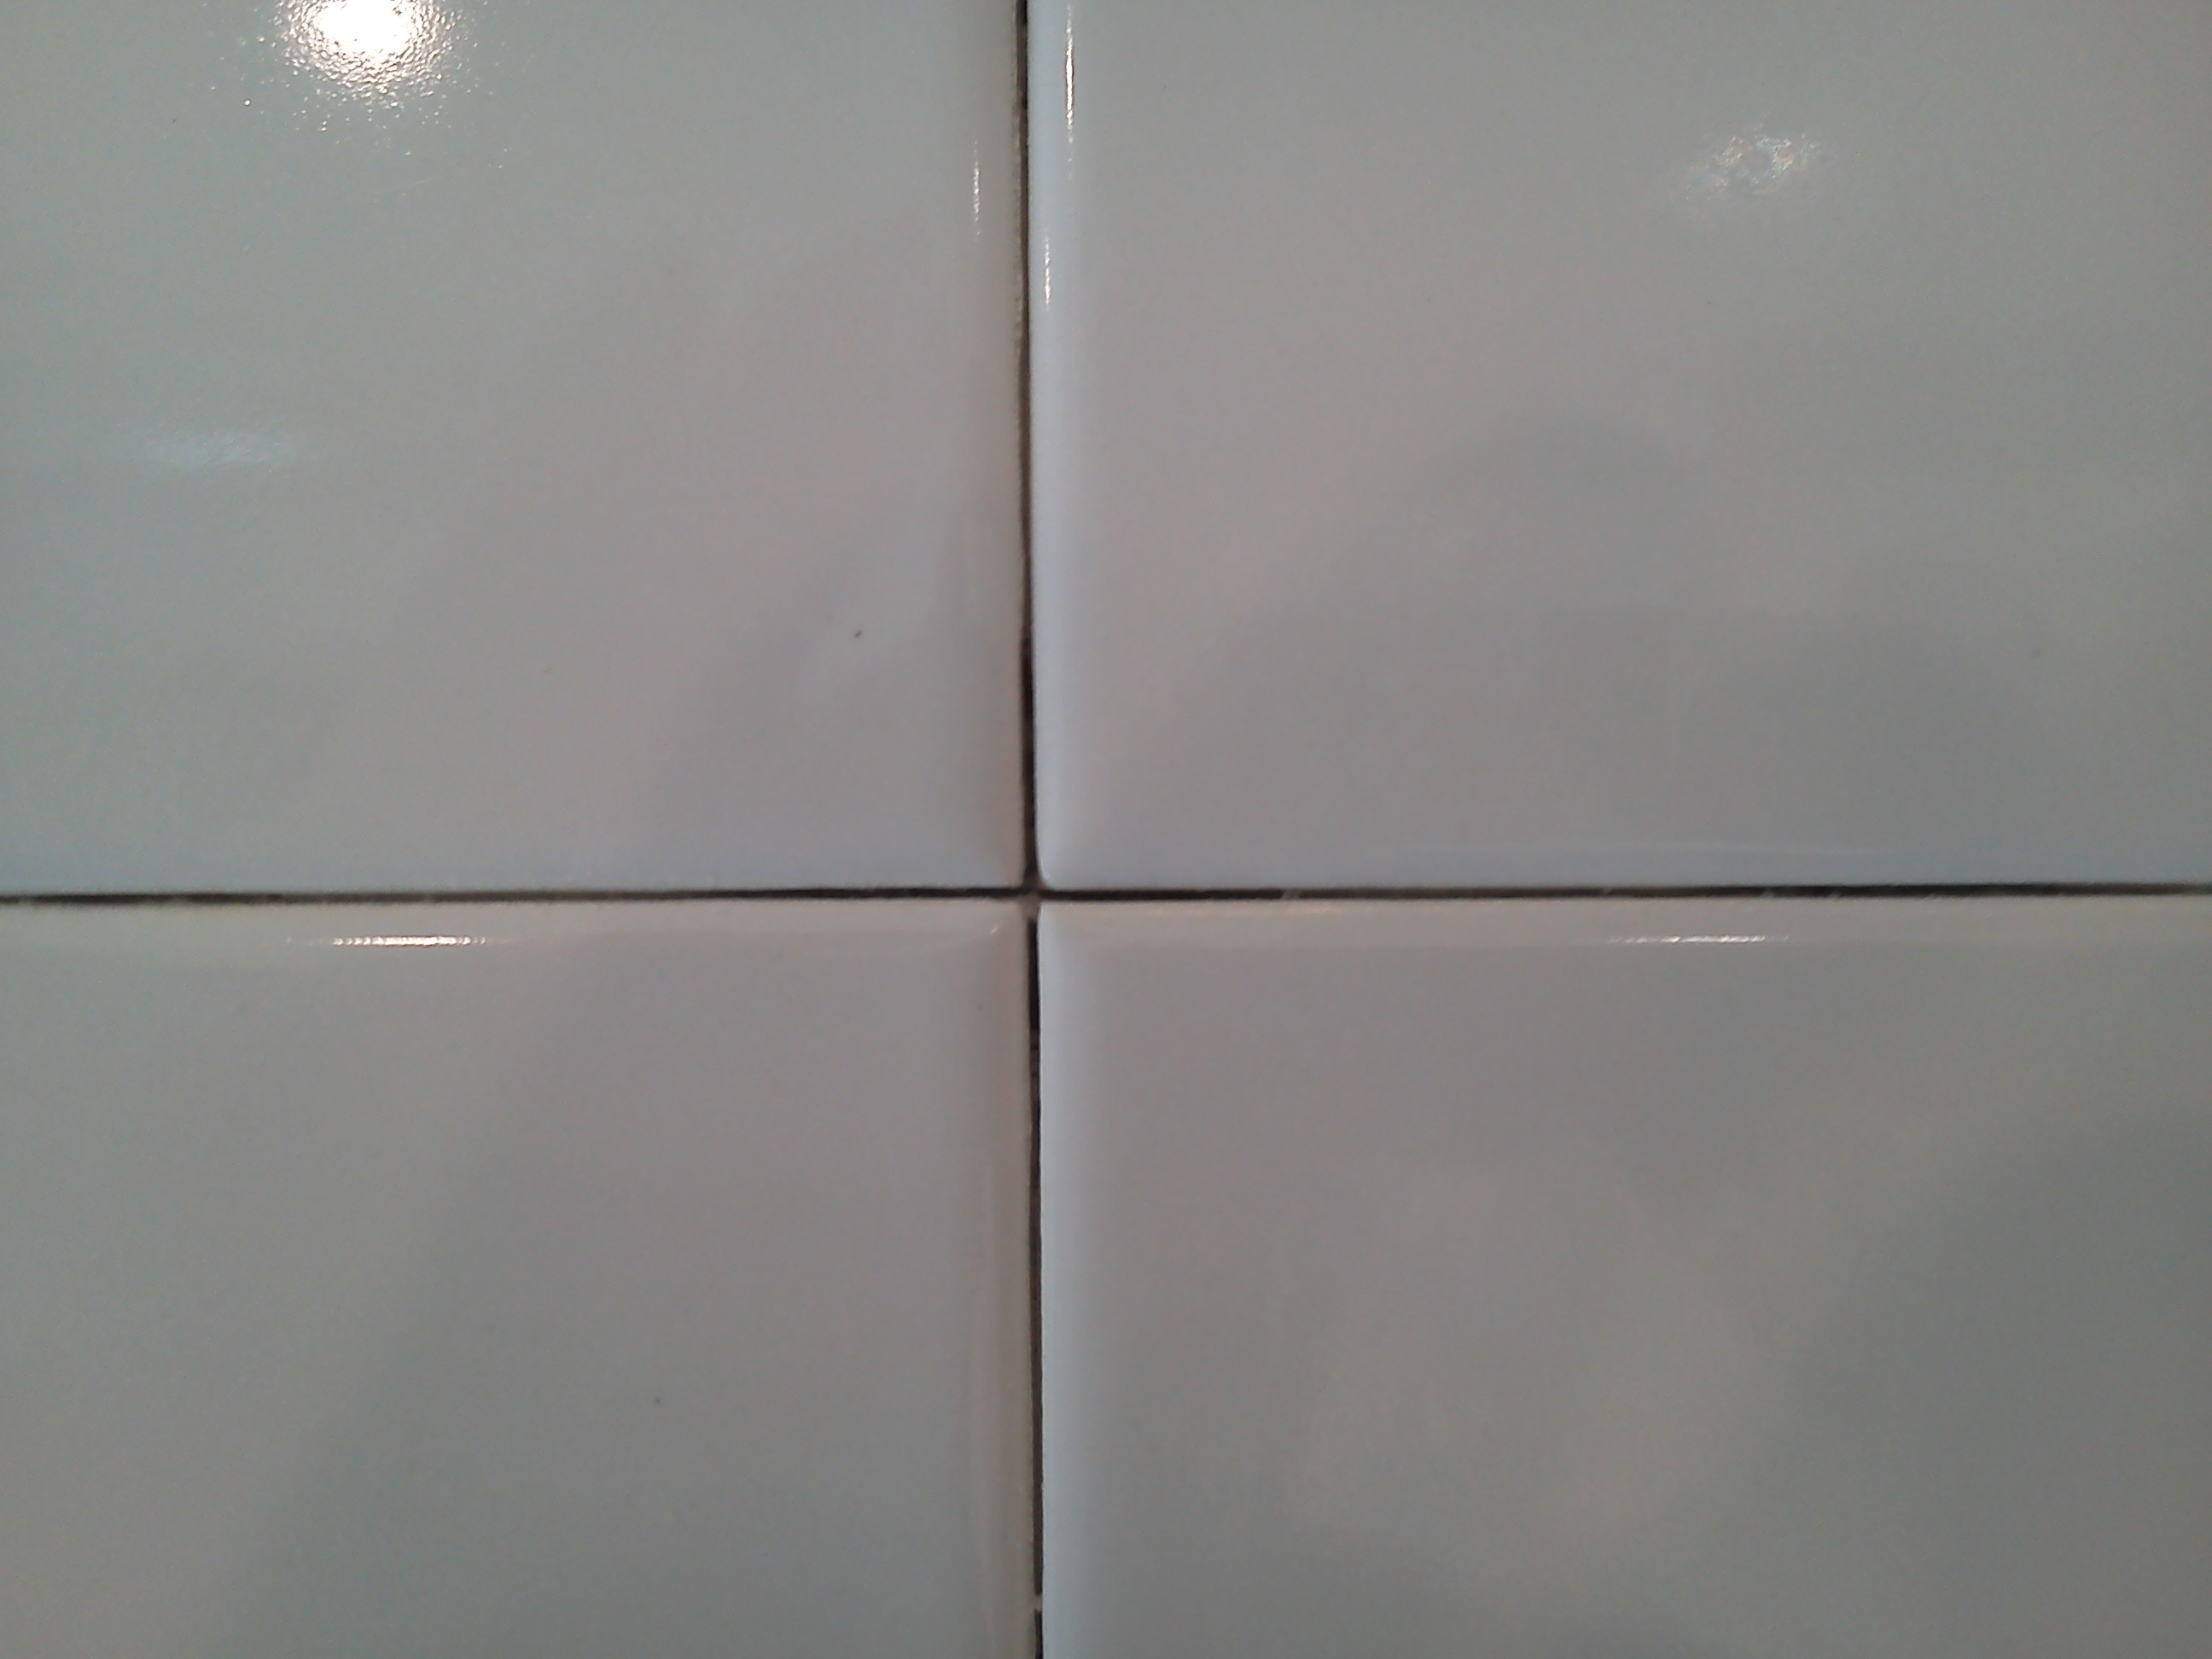 Catchy Kitchen Properly Removed Grout How To Regrout A Shower Tile Carpet Cleaning How To Regrout Tiles Easily How To Regrout Tile houzz-02 How To Regrout Tile